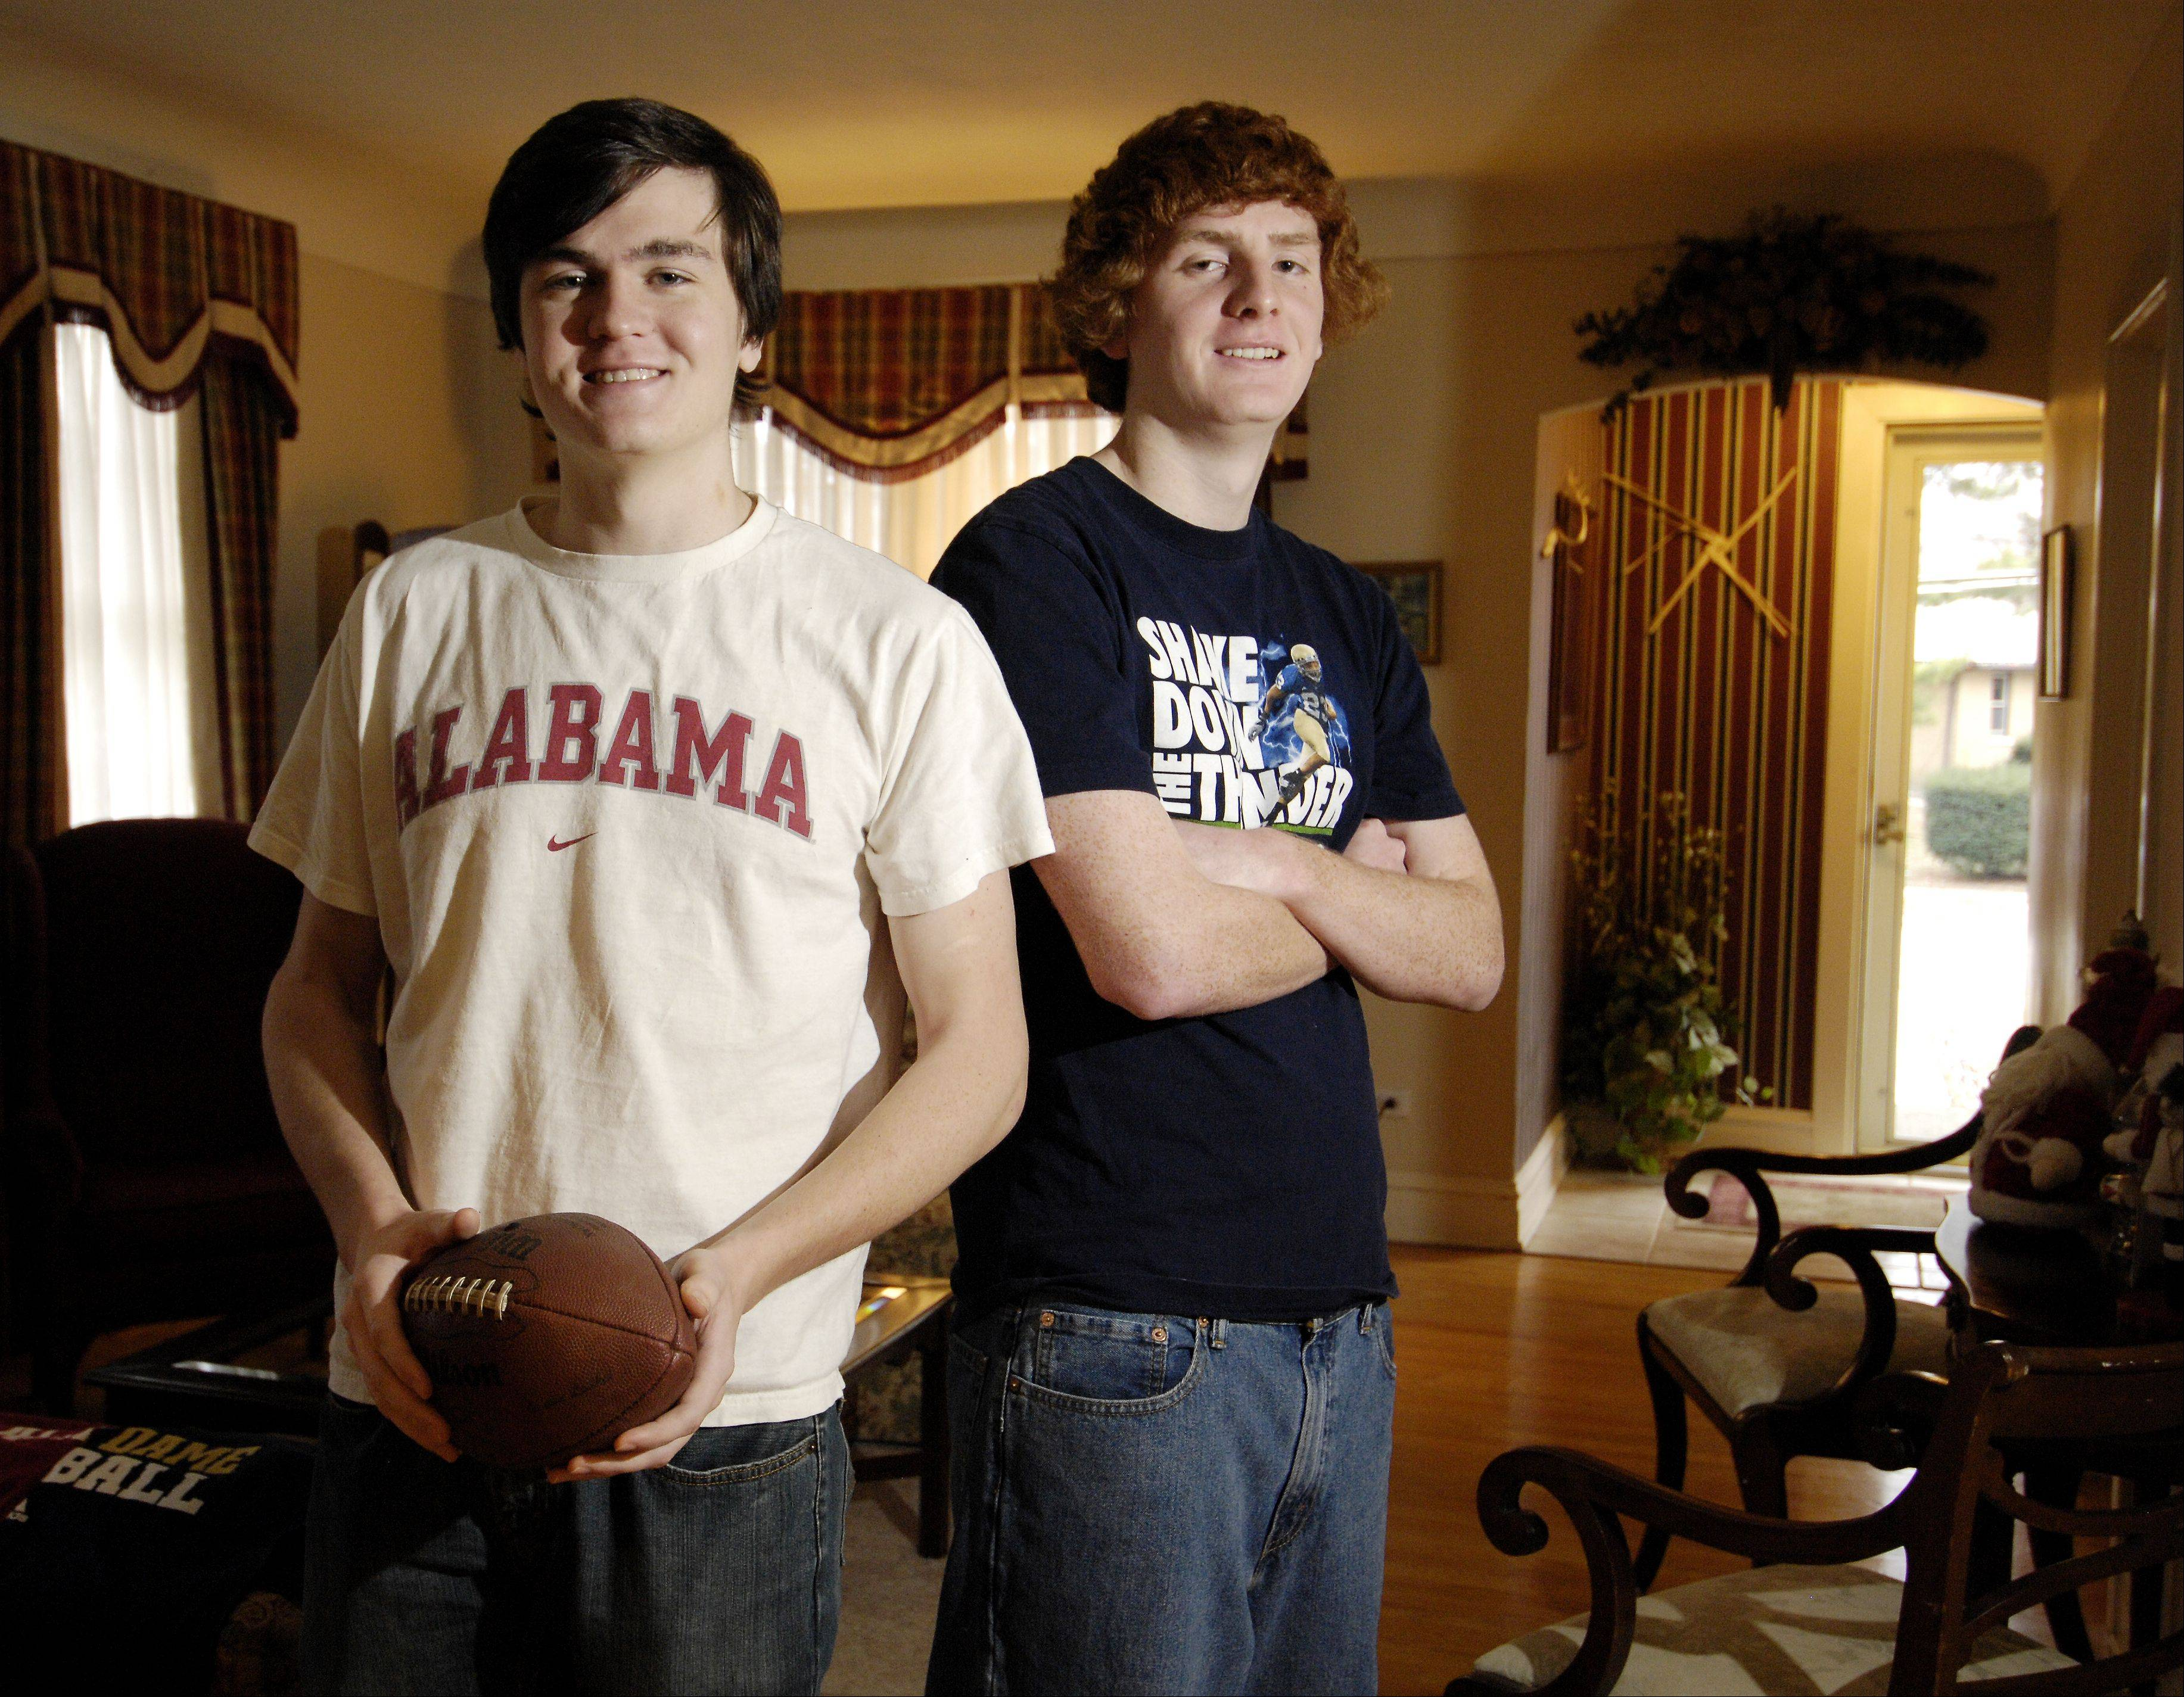 Bobby Miller, a junior at the University of Alabama, and his brother Jimmy, a freshman at the University of Notre Dame, will travel with the rest of their family from Lombard to Florida for Monday's BCS National Championship game between their schools.